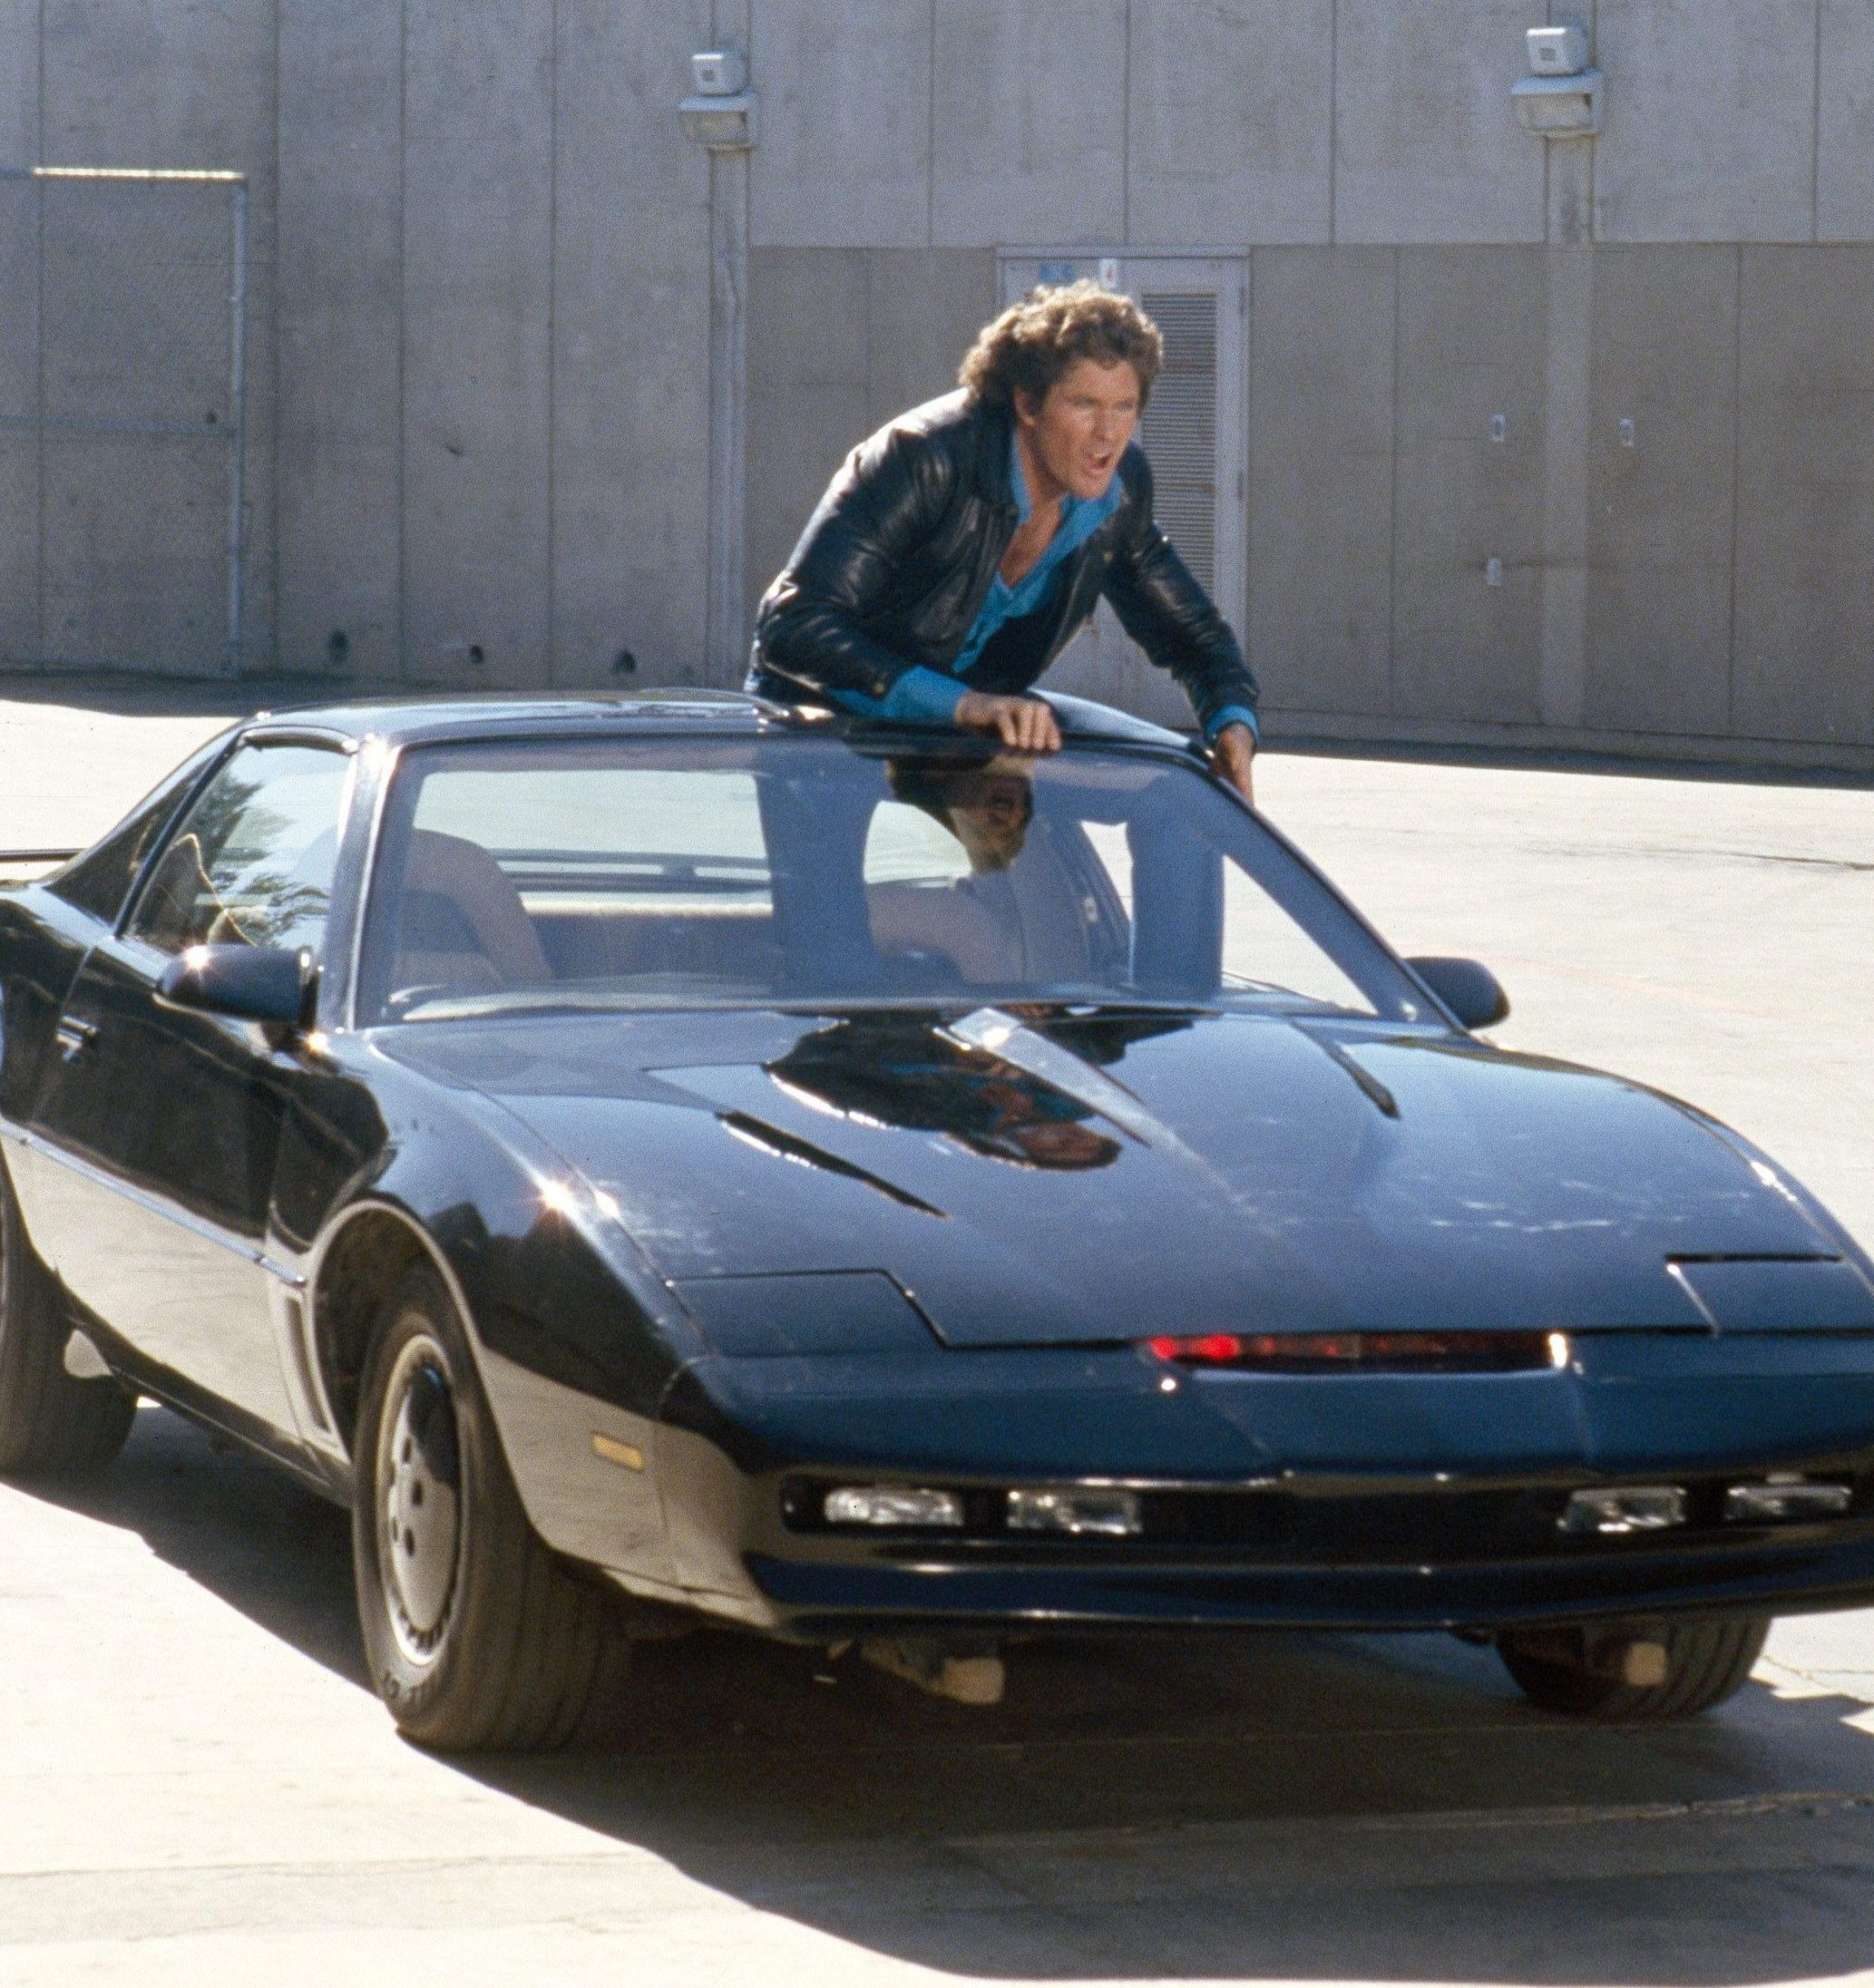 NINTCHDBPICT000137308685 e1582041673765 10 Vehicles From 80s Movies And TV Shows You Wish You Owned